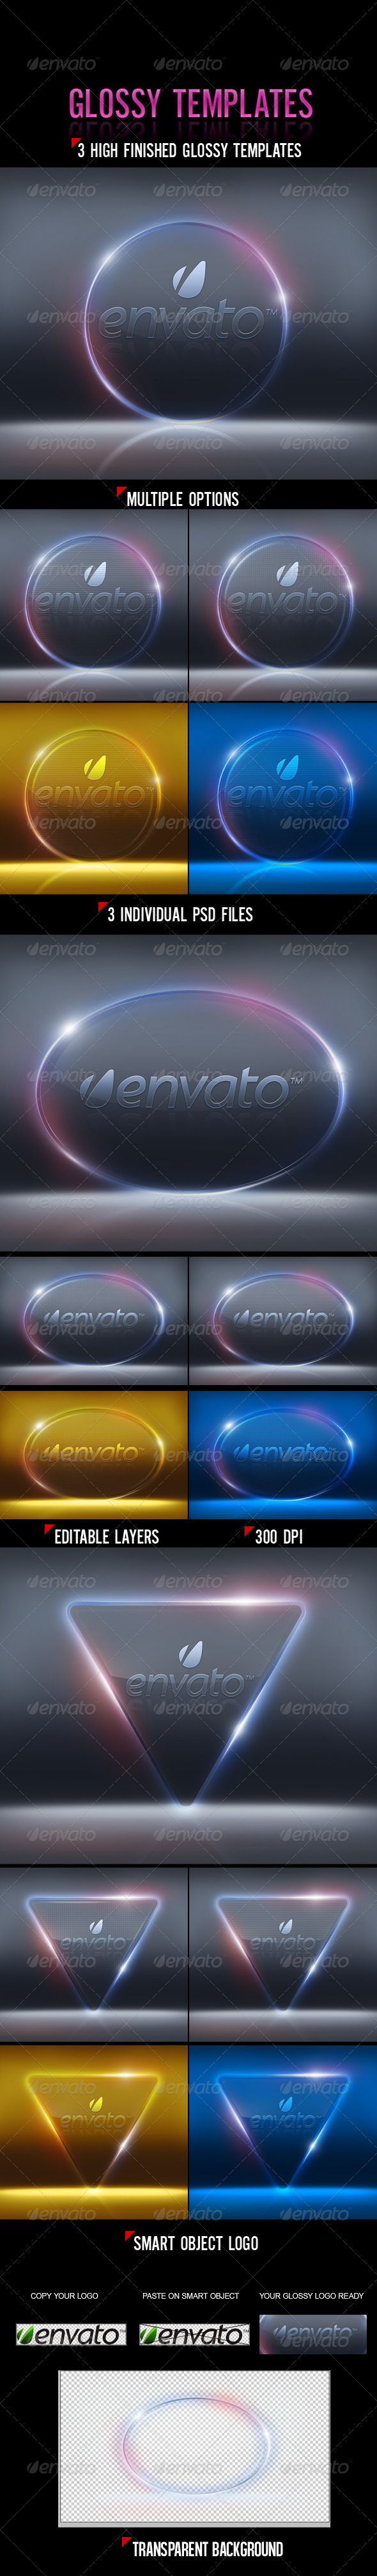 GraphicRiver Glossy Templates 3032622